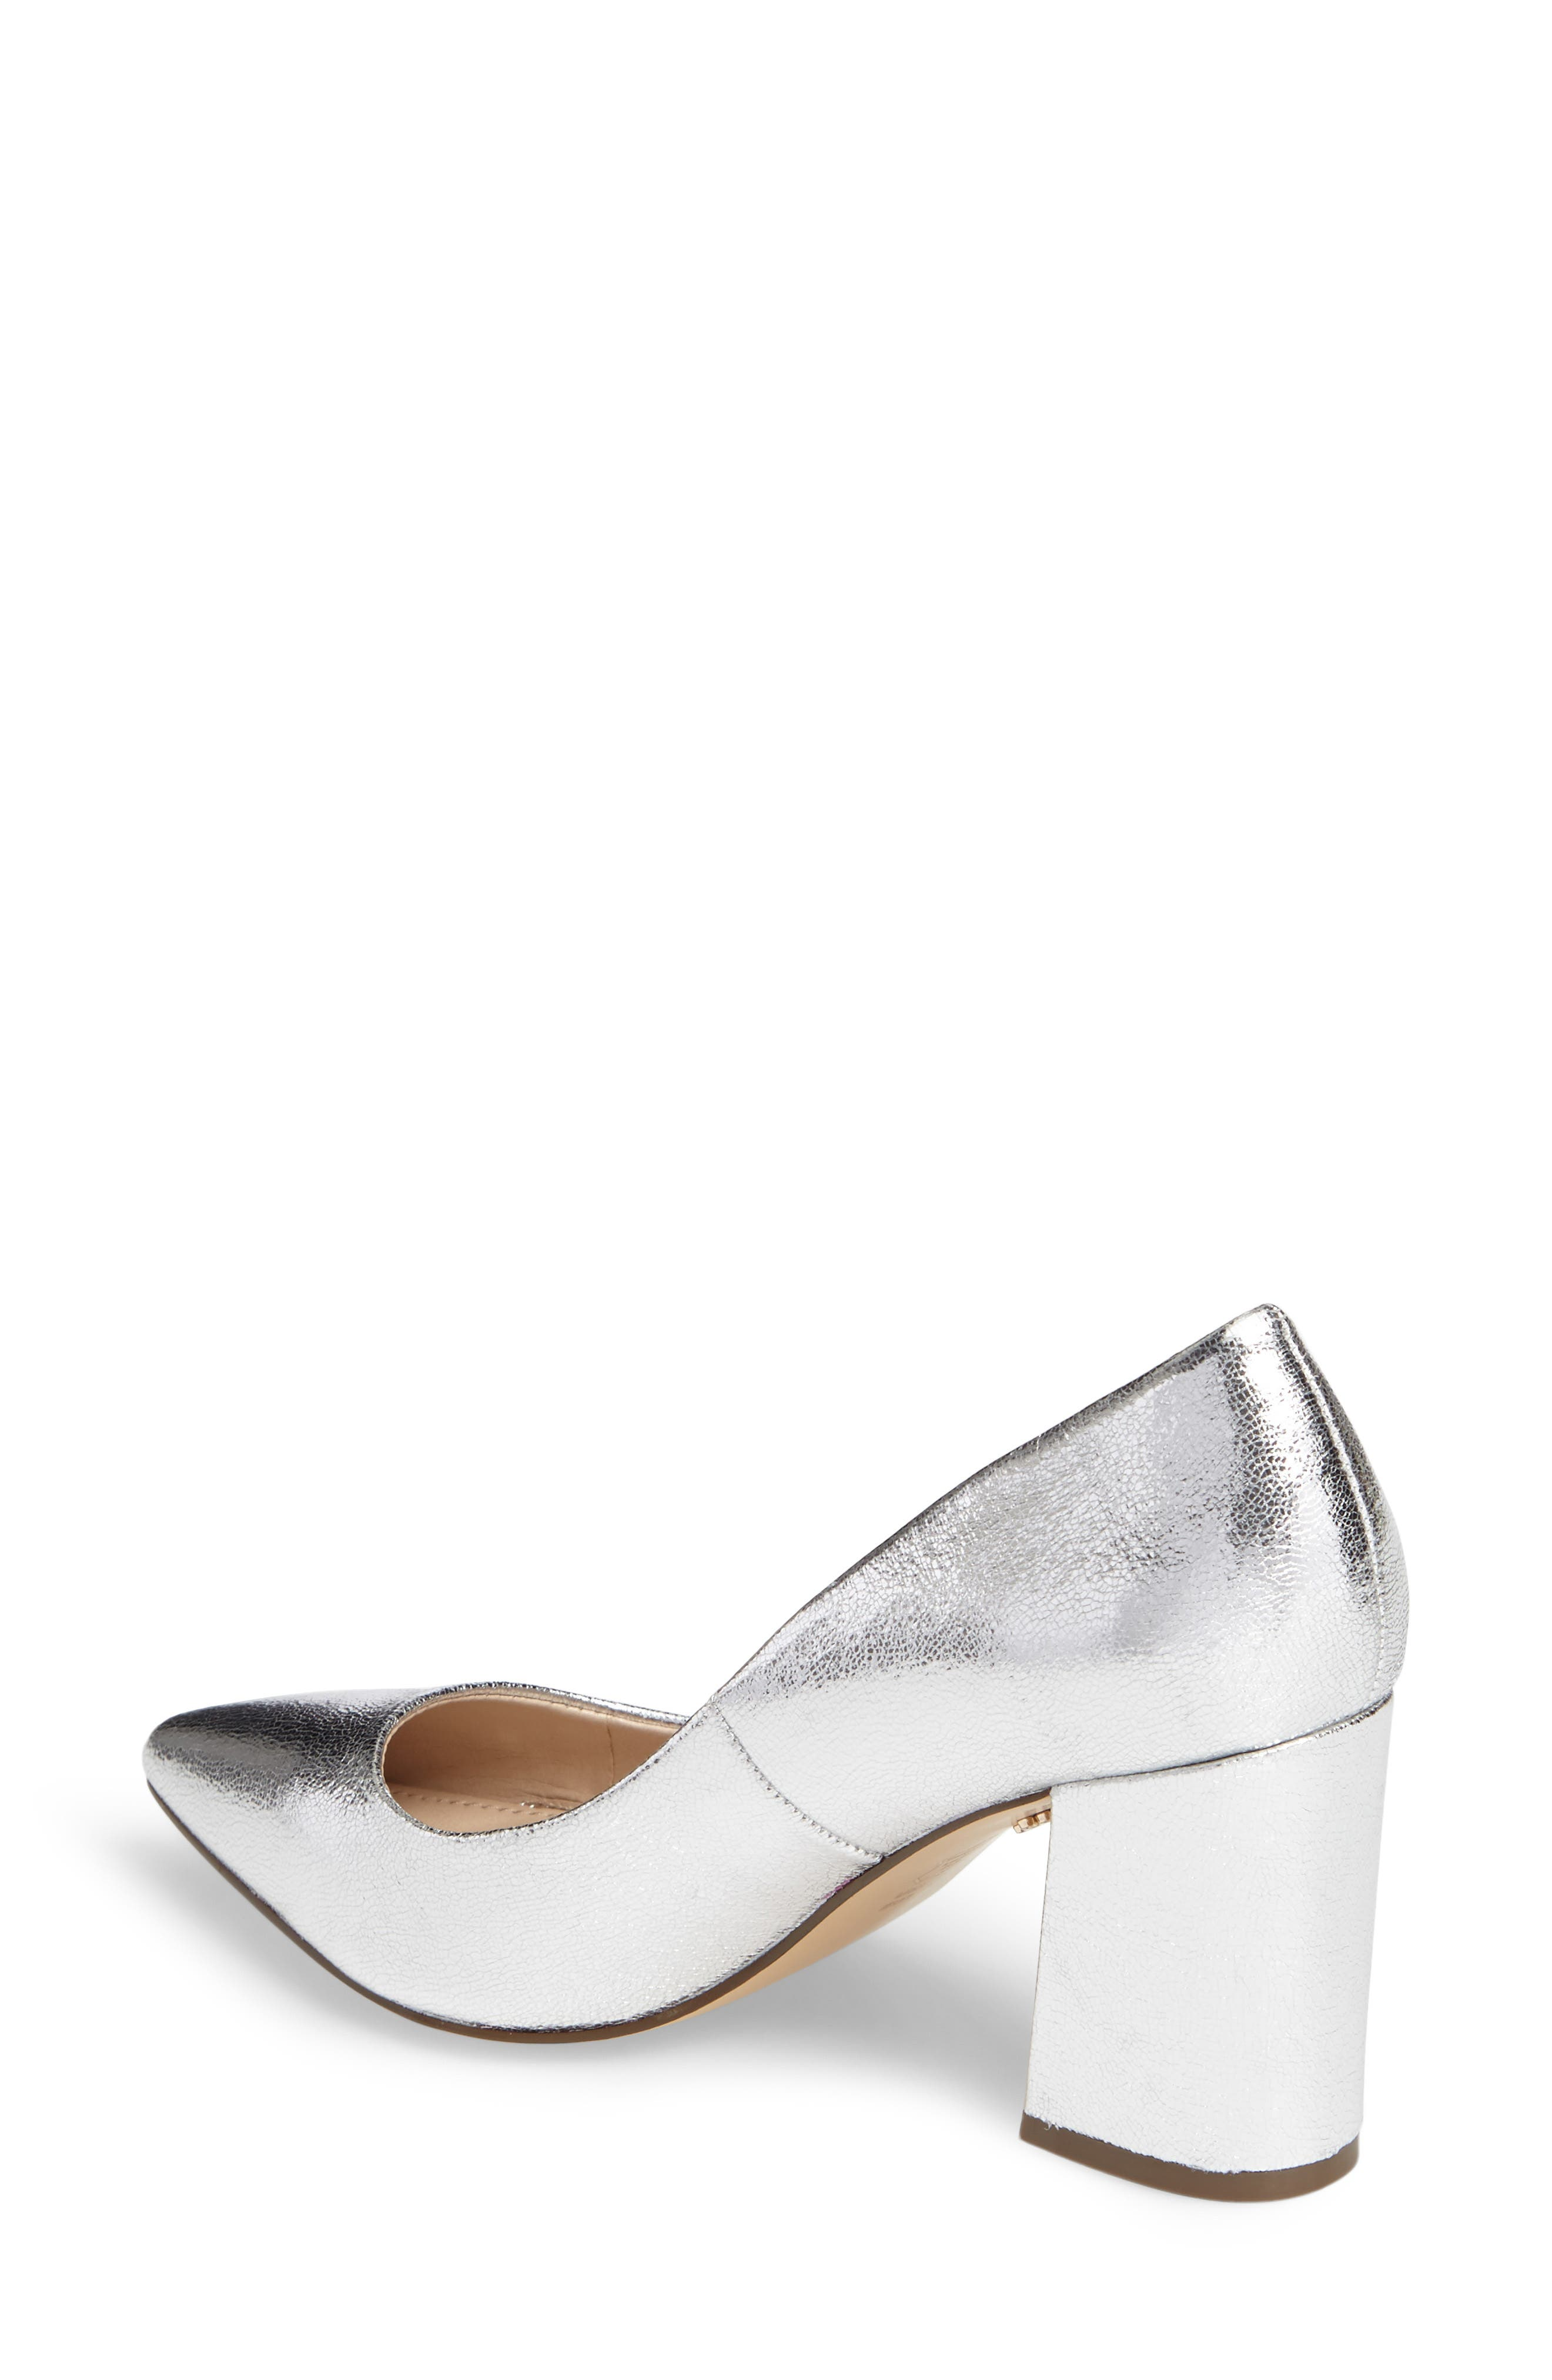 Tinsley Pointy Toe Pump,                             Alternate thumbnail 2, color,                             Silver Fabric